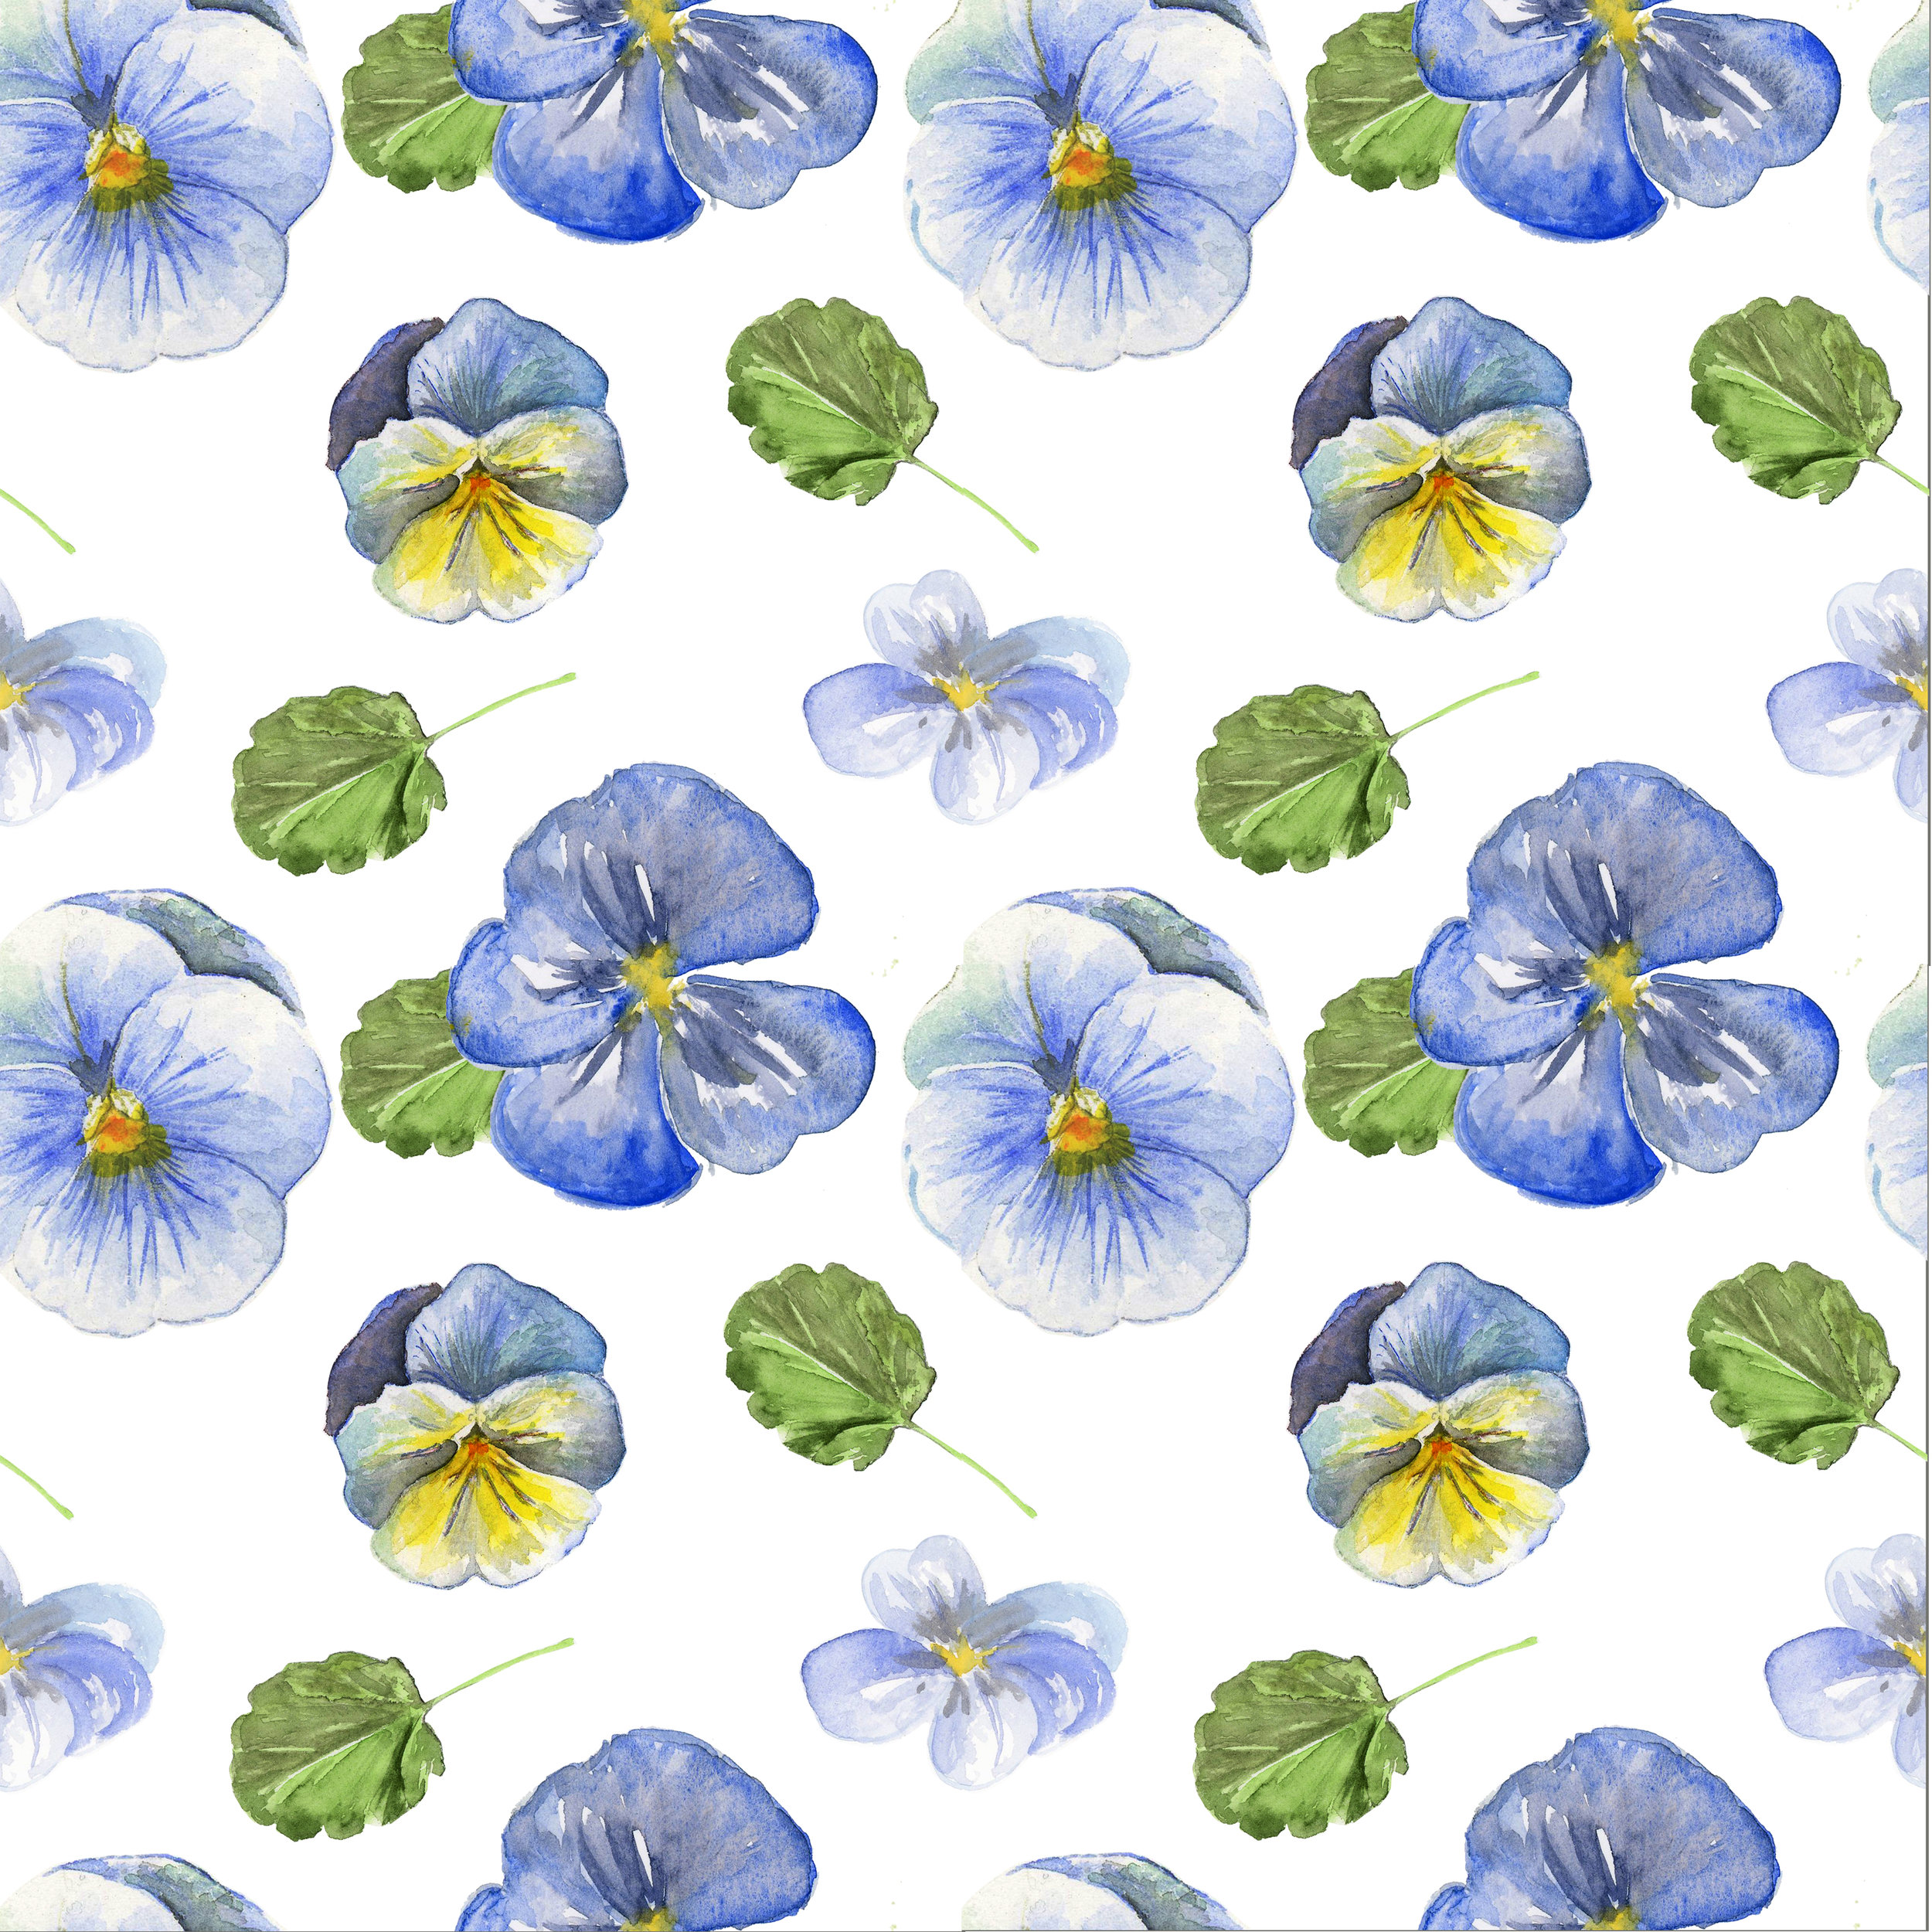 Pansy Floral Patter